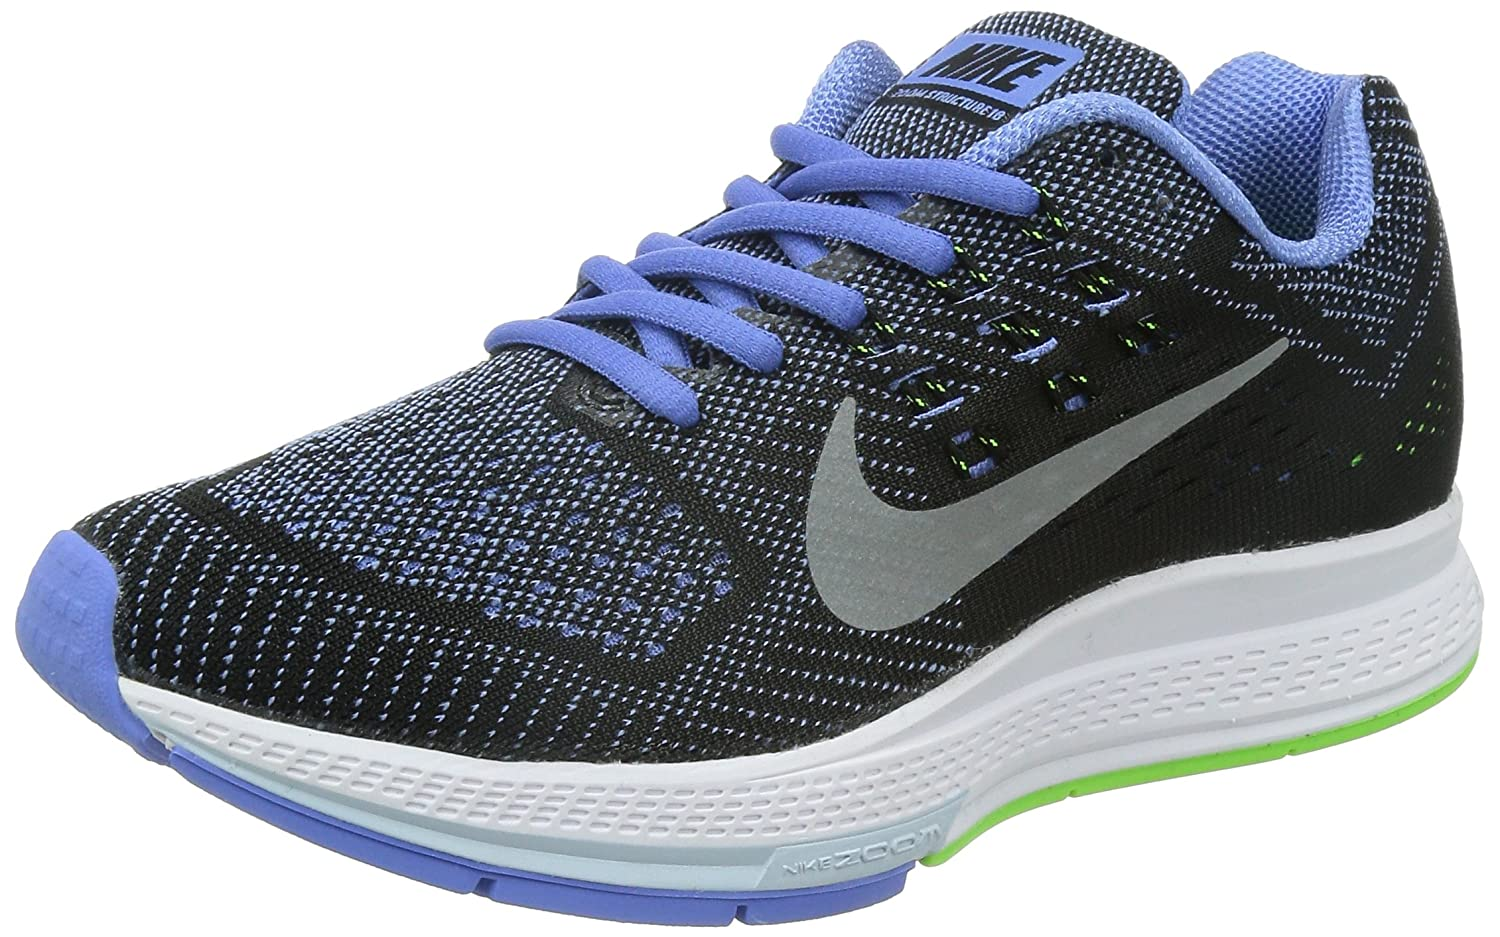 super popular 712f1 97519 Nike AIR Zoom Structure 18 Women s Running SHOES-683737-402-SIZE-6 UK   Amazon.in  Shoes   Handbags